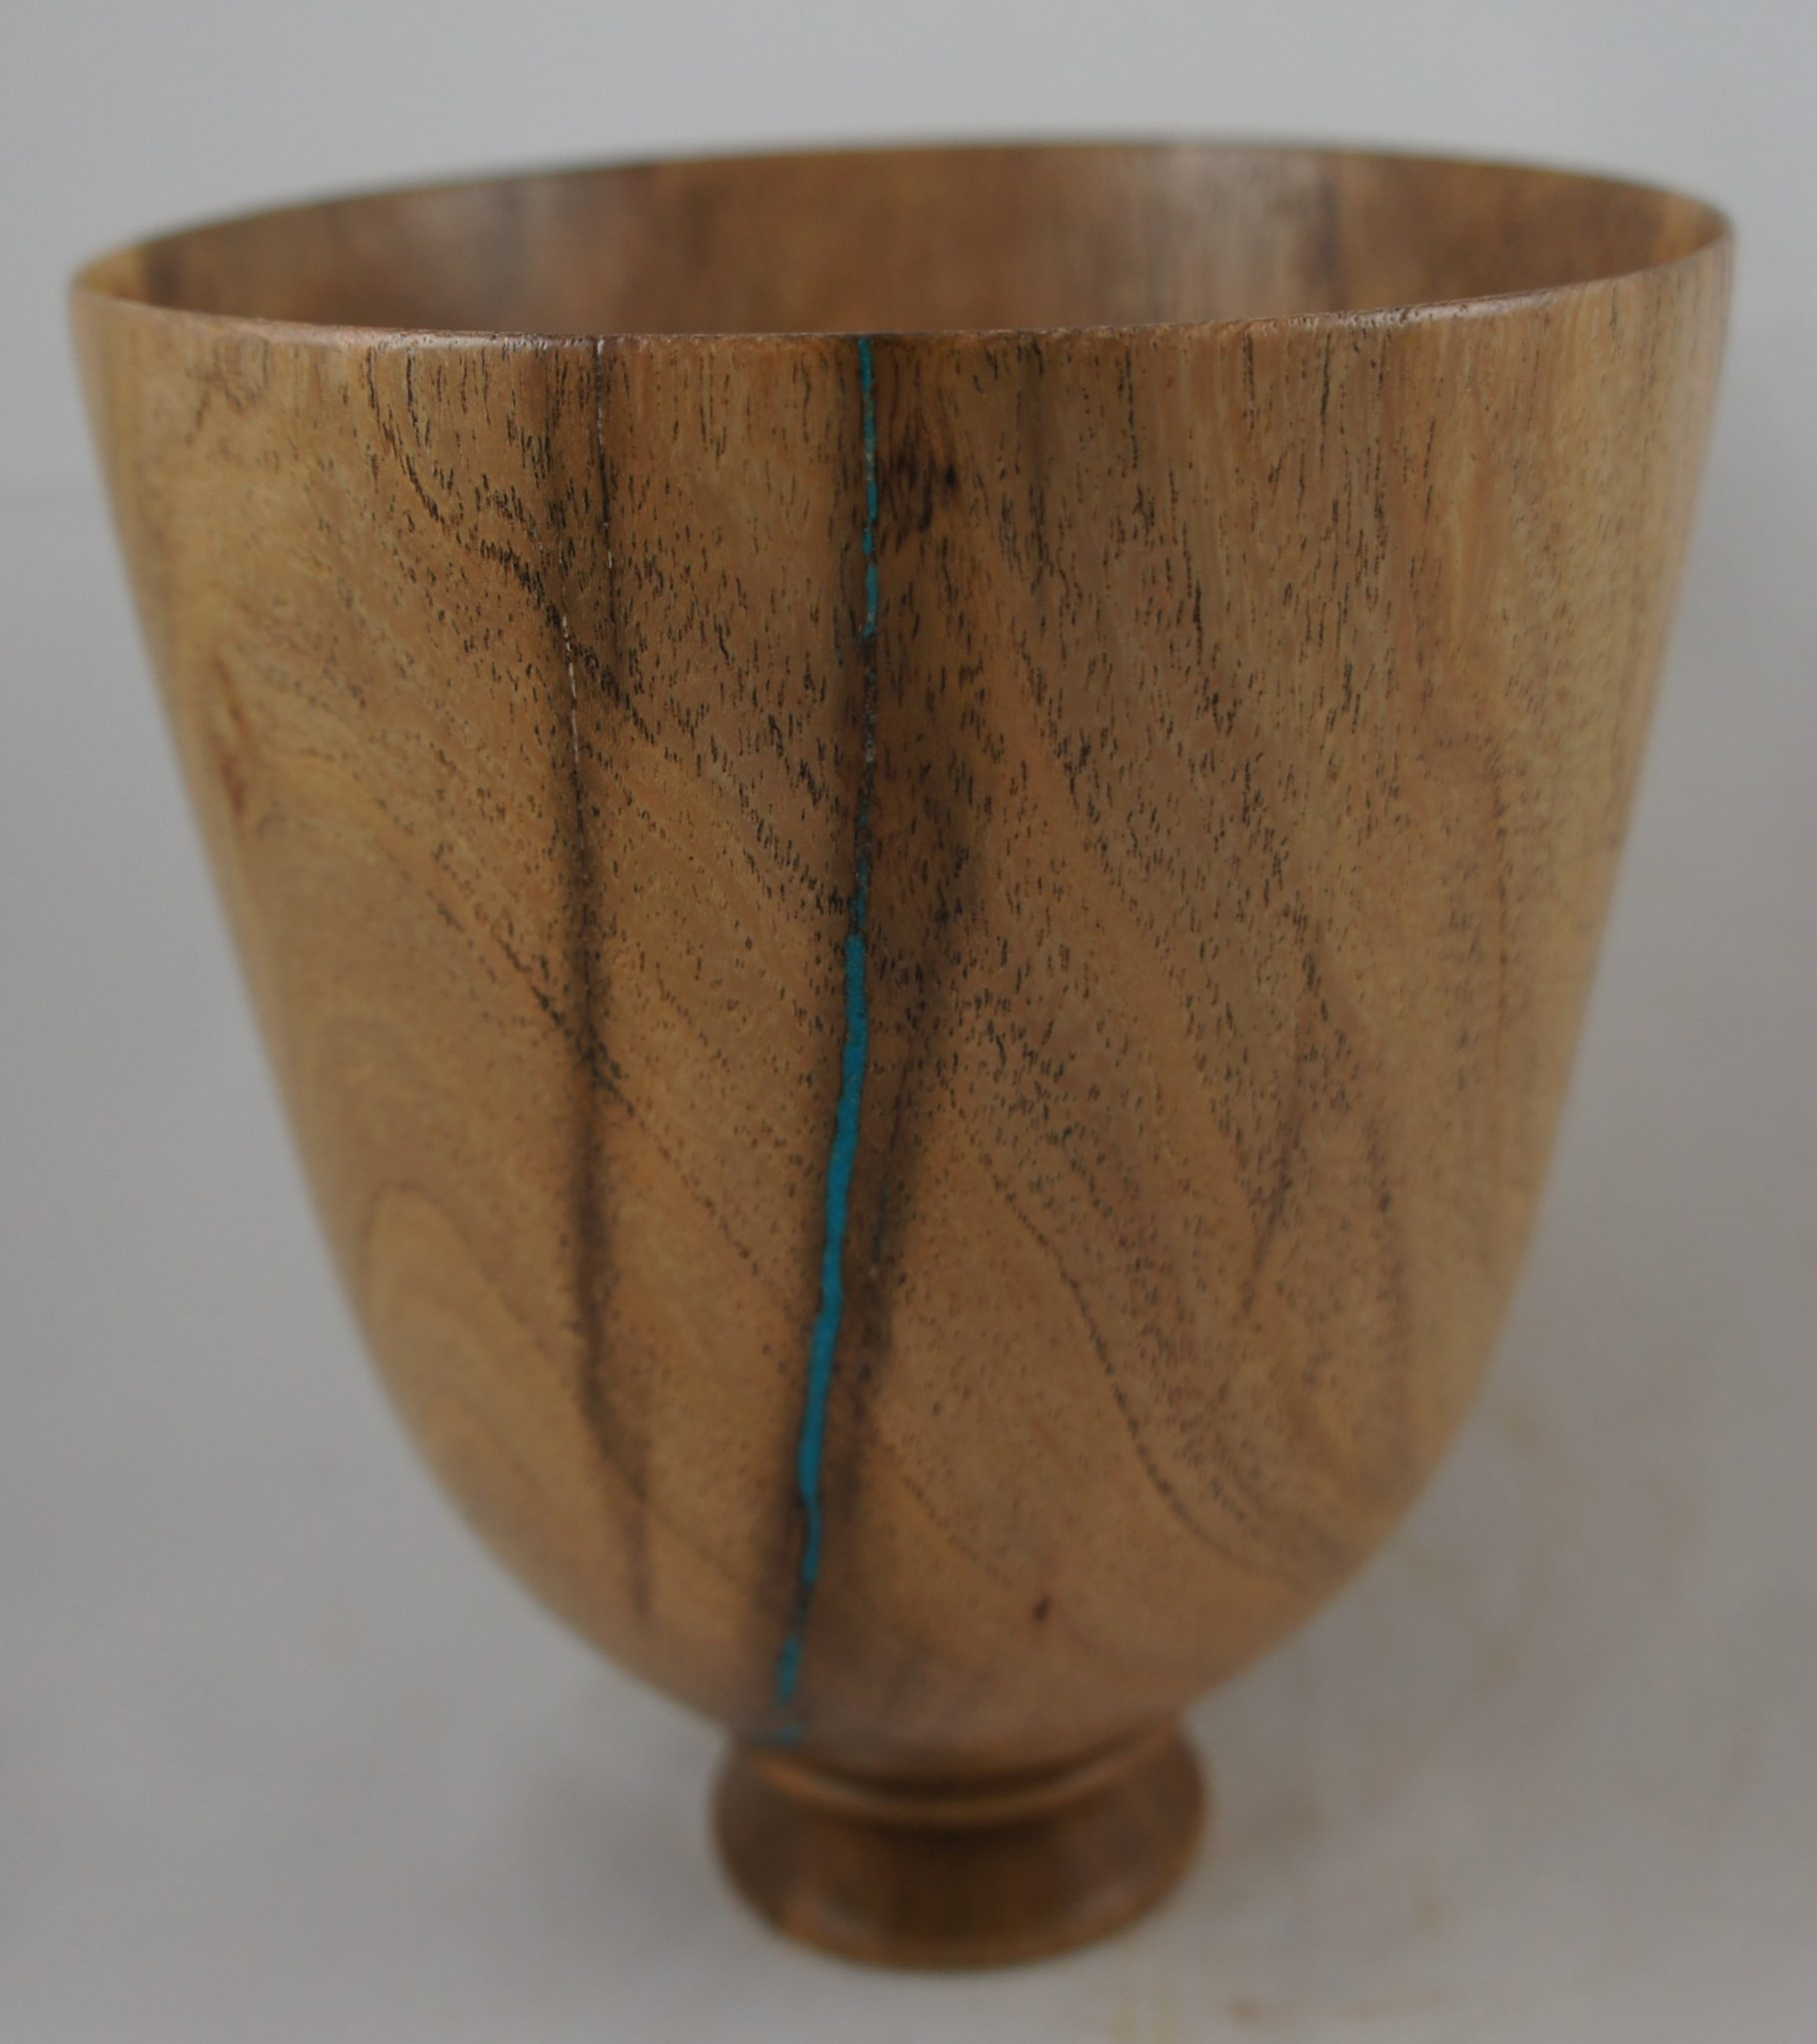 Mesquite bowl with turquoise embellishment